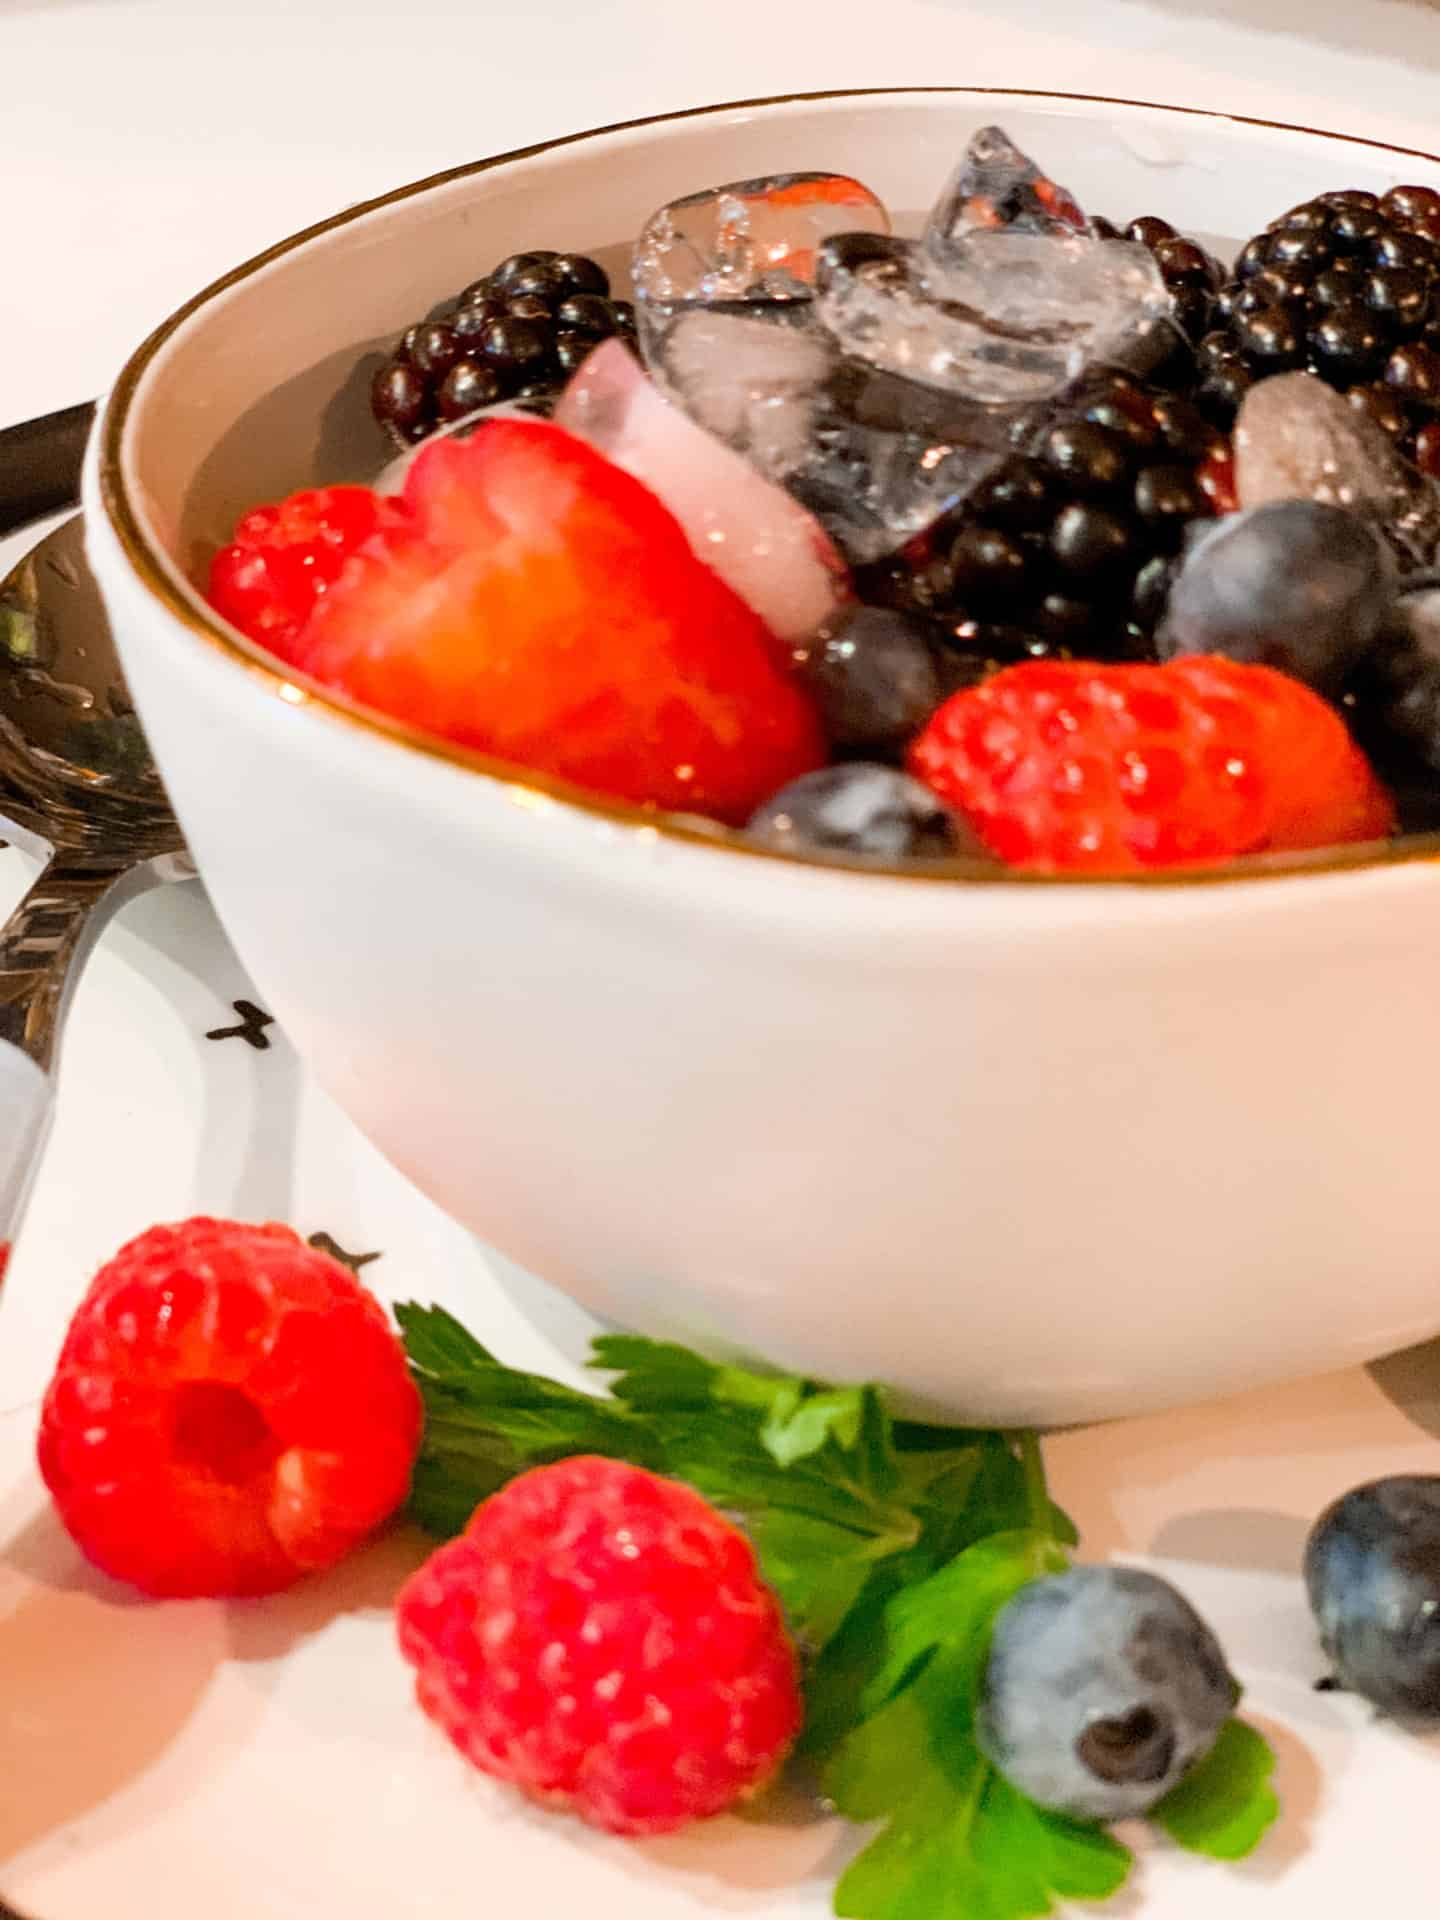 Nature's Cereal Recipe- Raspberries, Blueberries & Blackberries In A Bowl Of Coconut Water With Ice